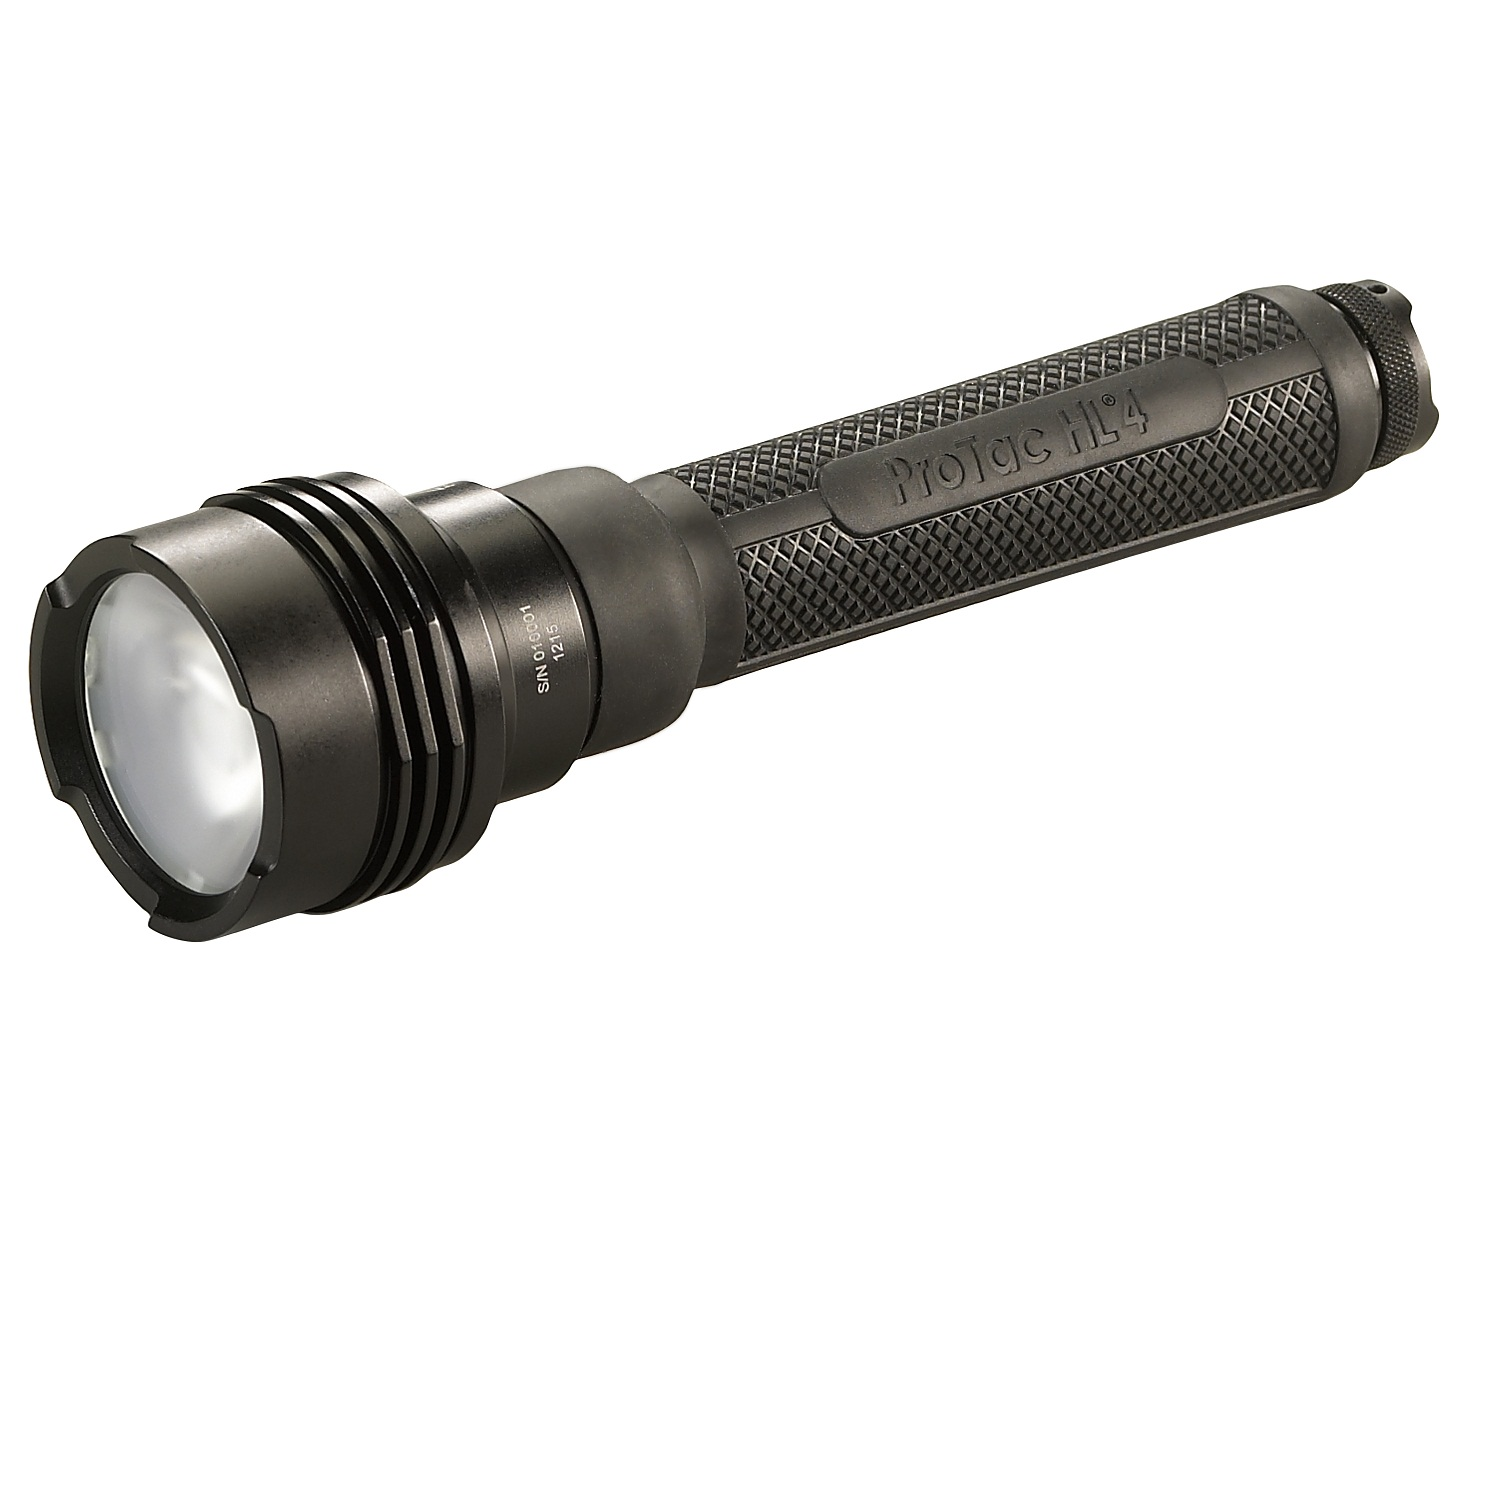 Pro Tac HL 4 High Lumen Lithium Power Flashlight-2200 Lumens